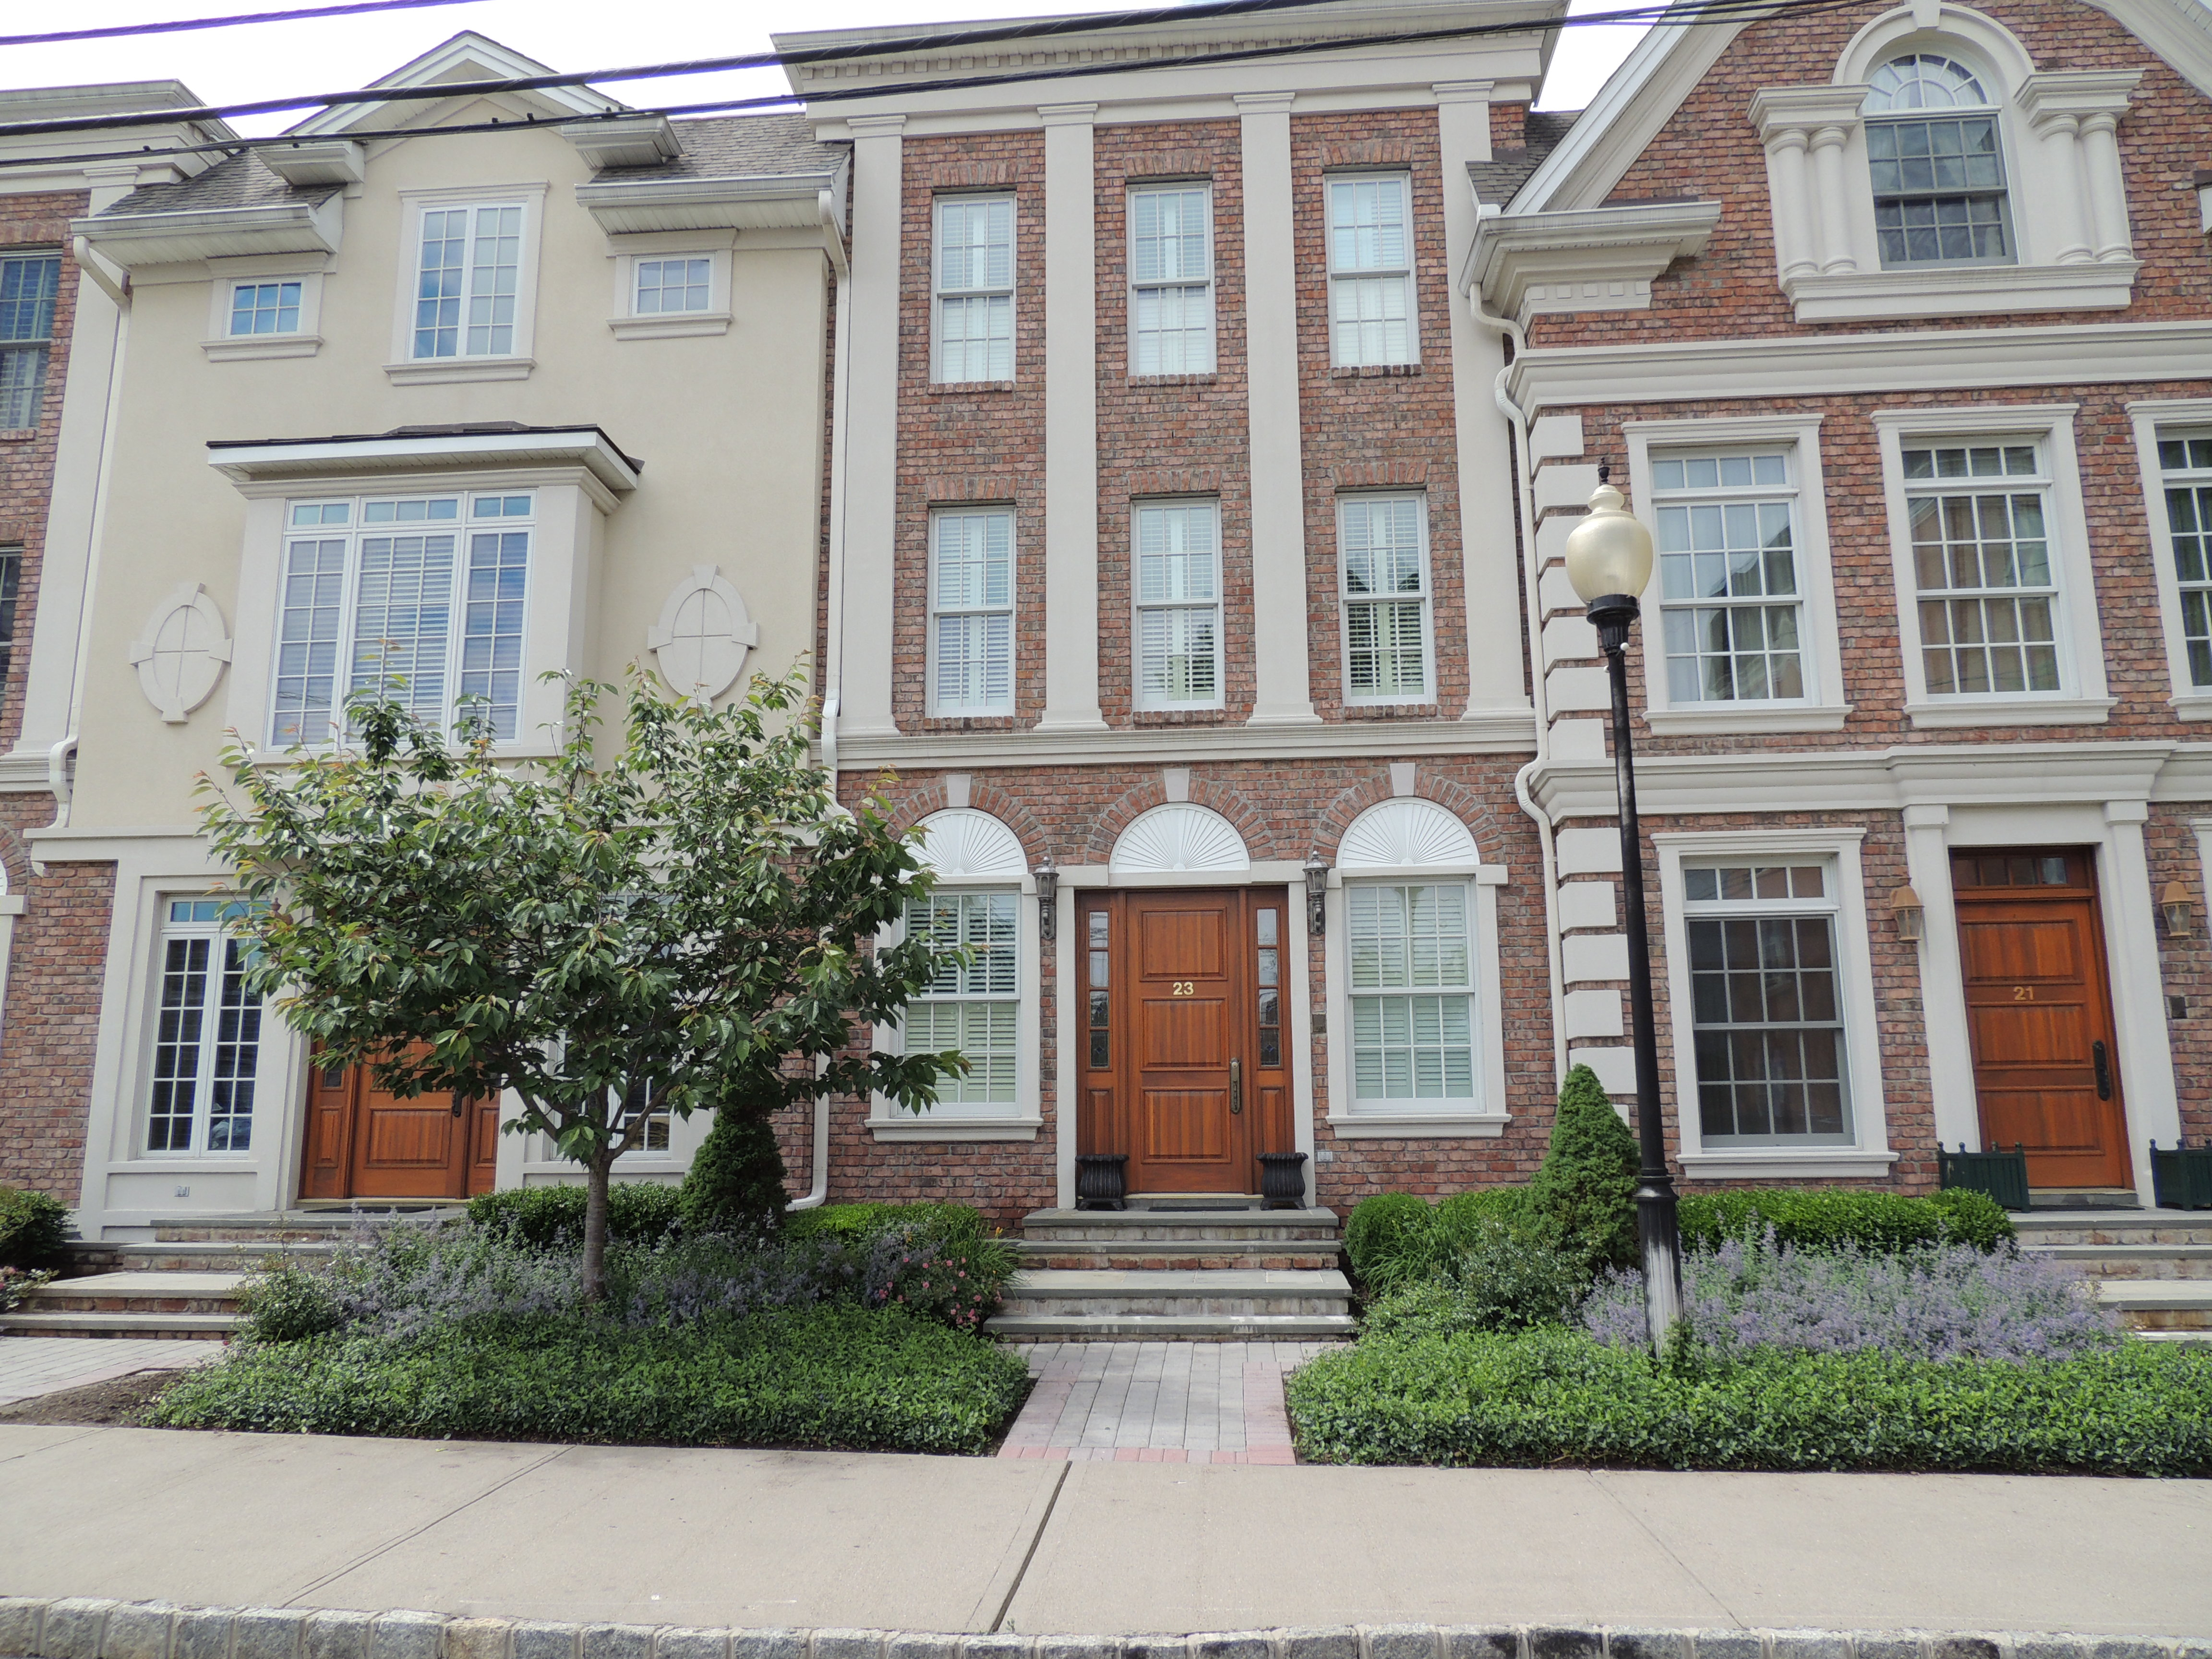 Georgetown Luxury Townhouses Morristown New Jersey Nj